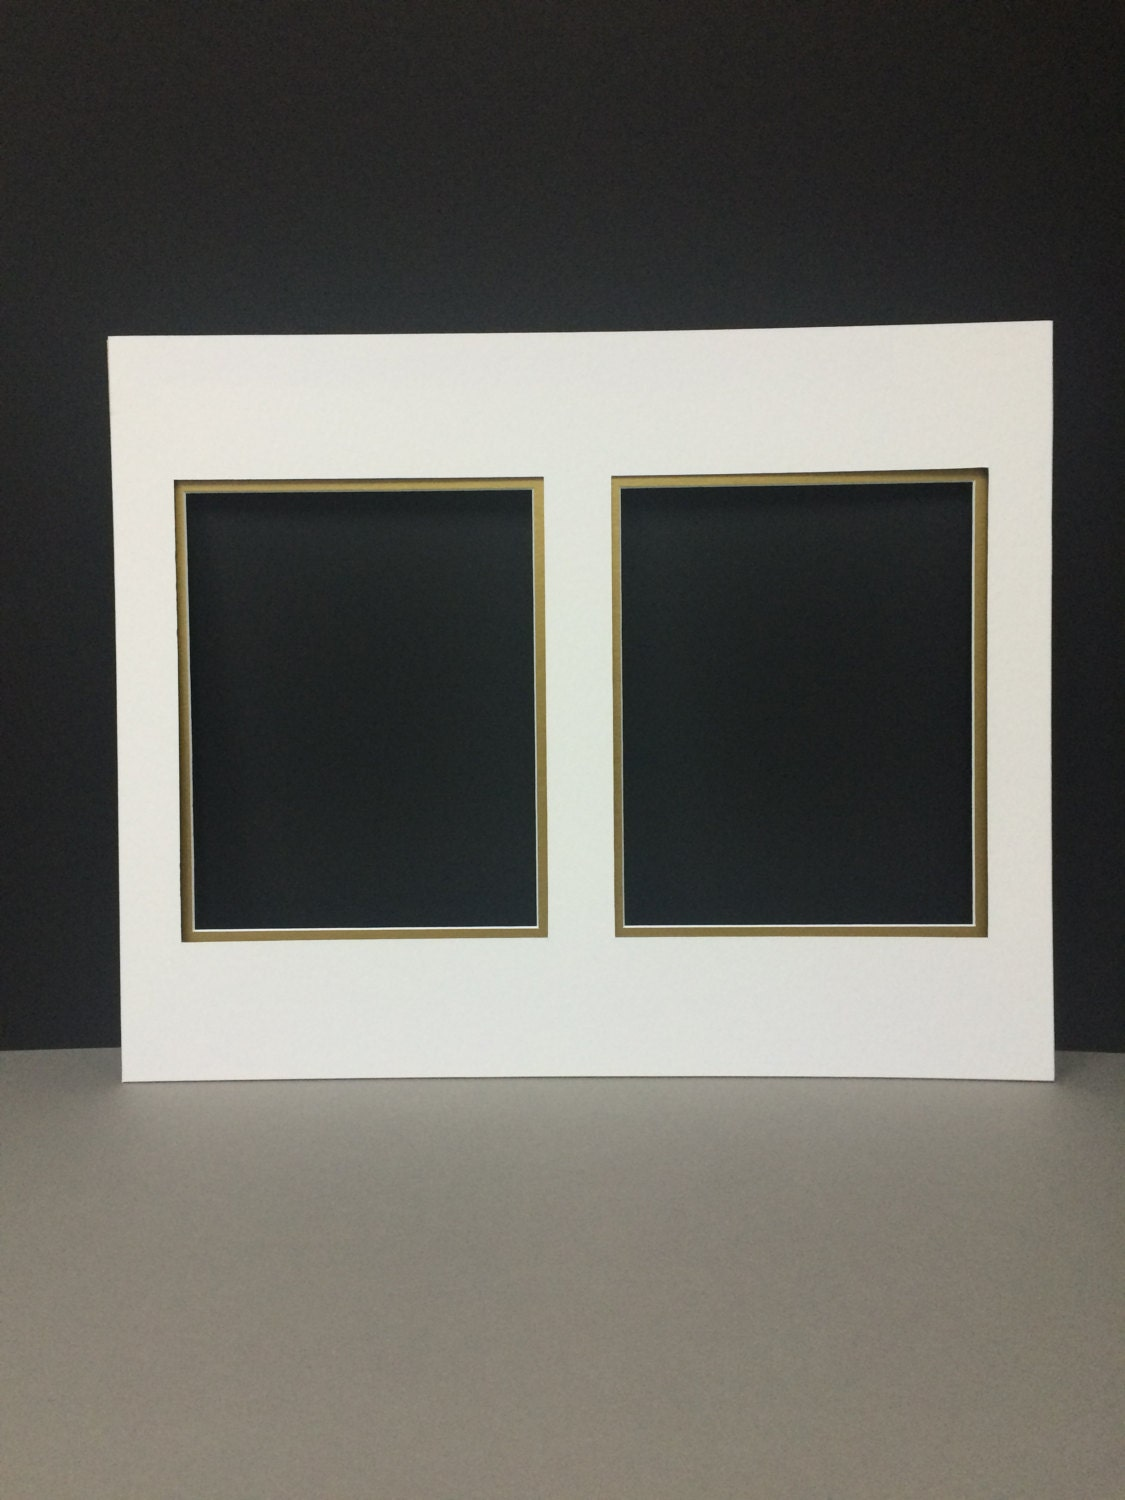 16x20 double picture mats for 2 8x10 pictures over 30 zoom jeuxipadfo Gallery